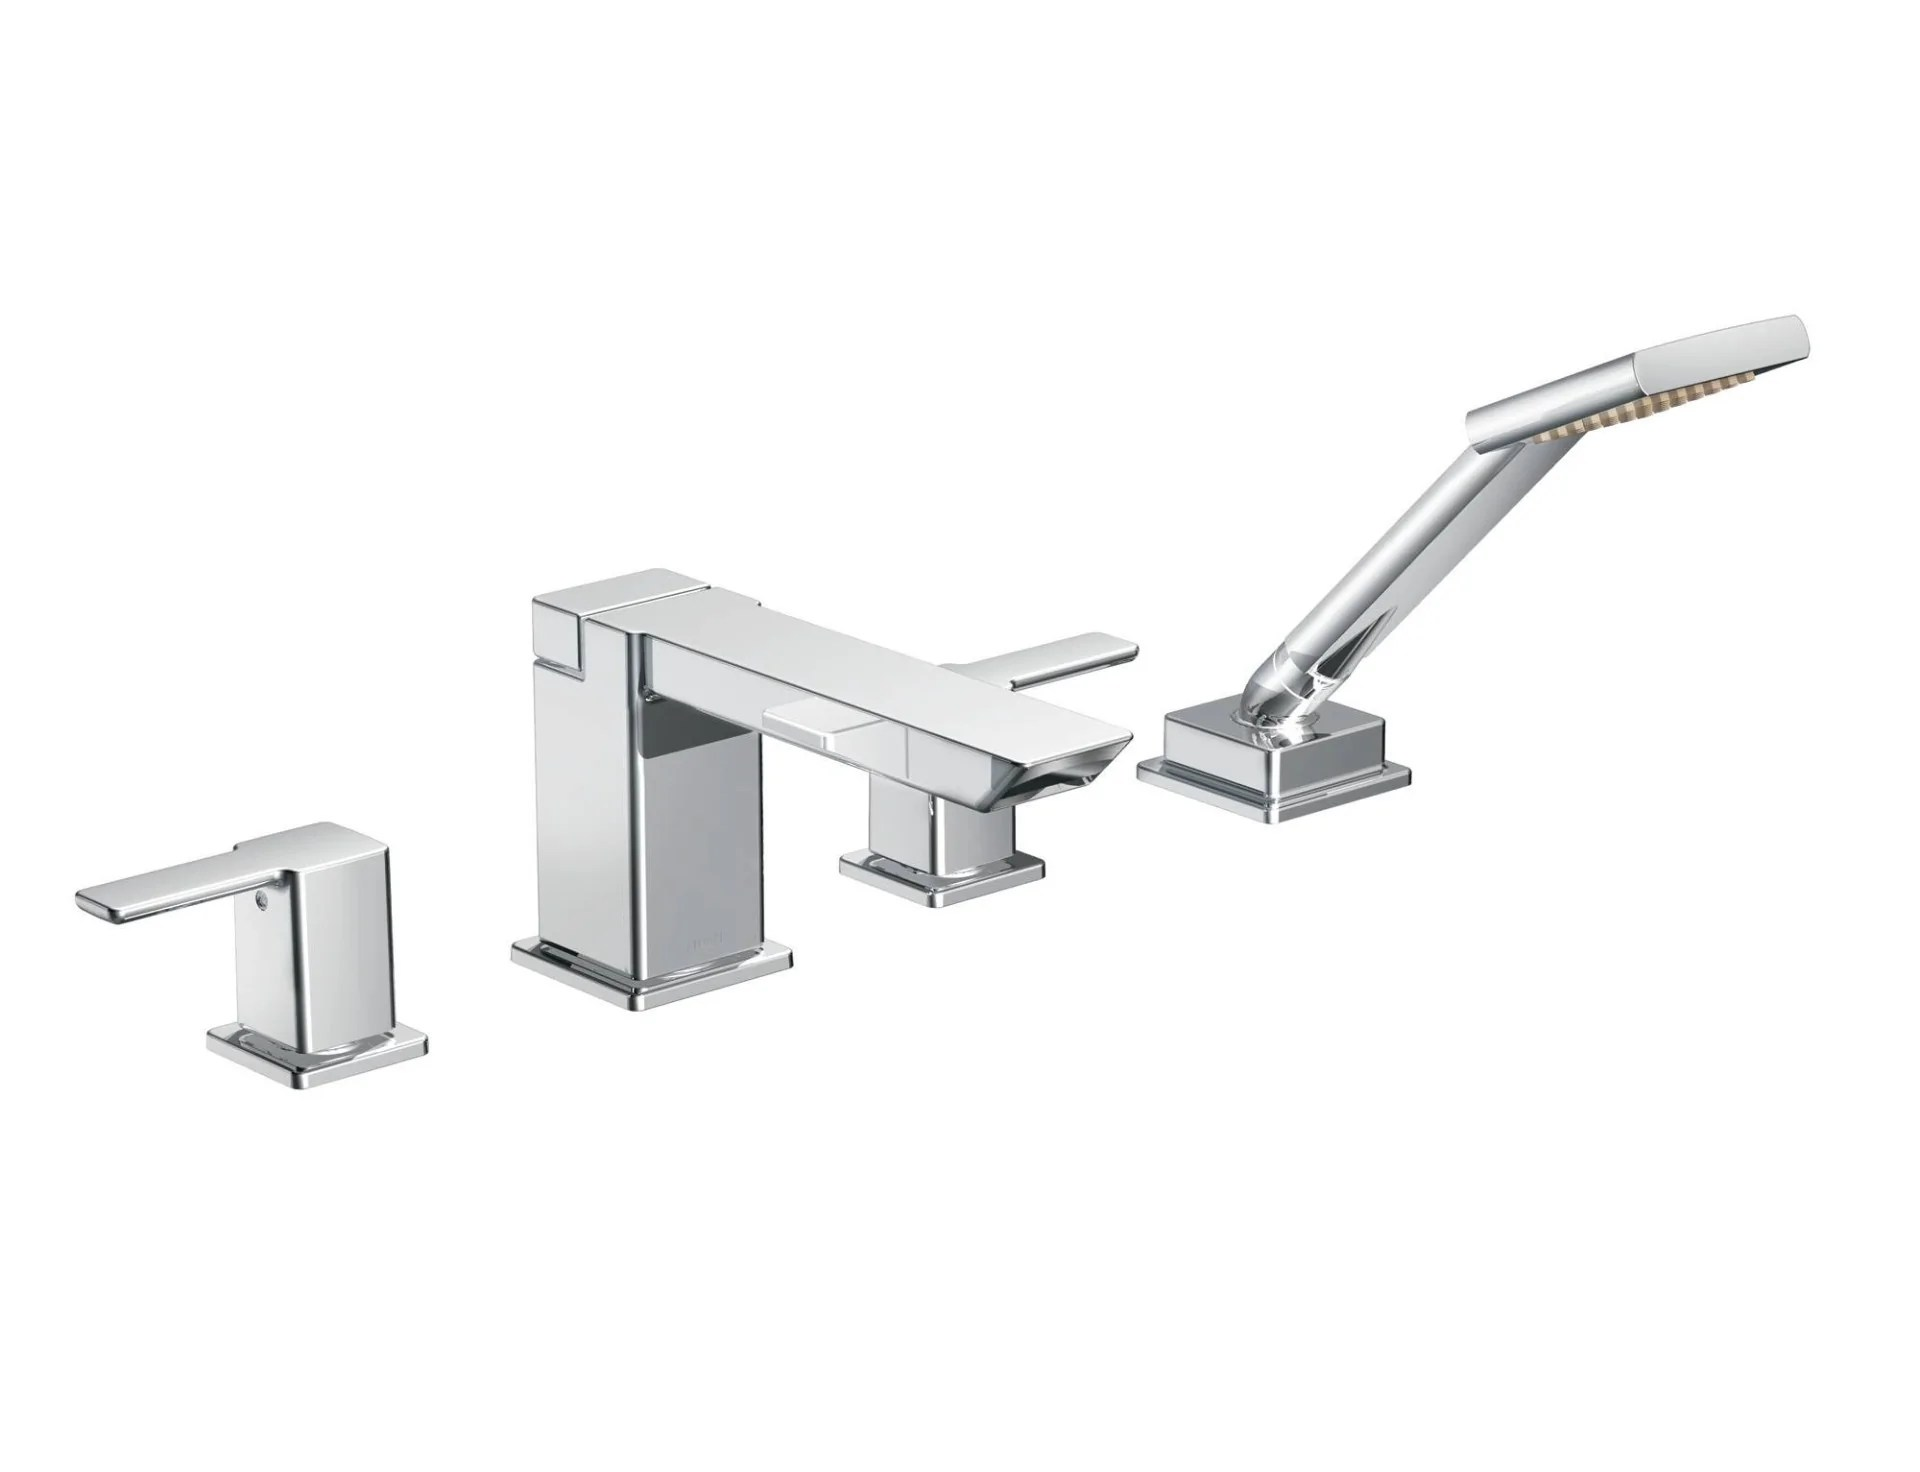 90 Degree Moen Tub Faucet Handheld Shower Pace